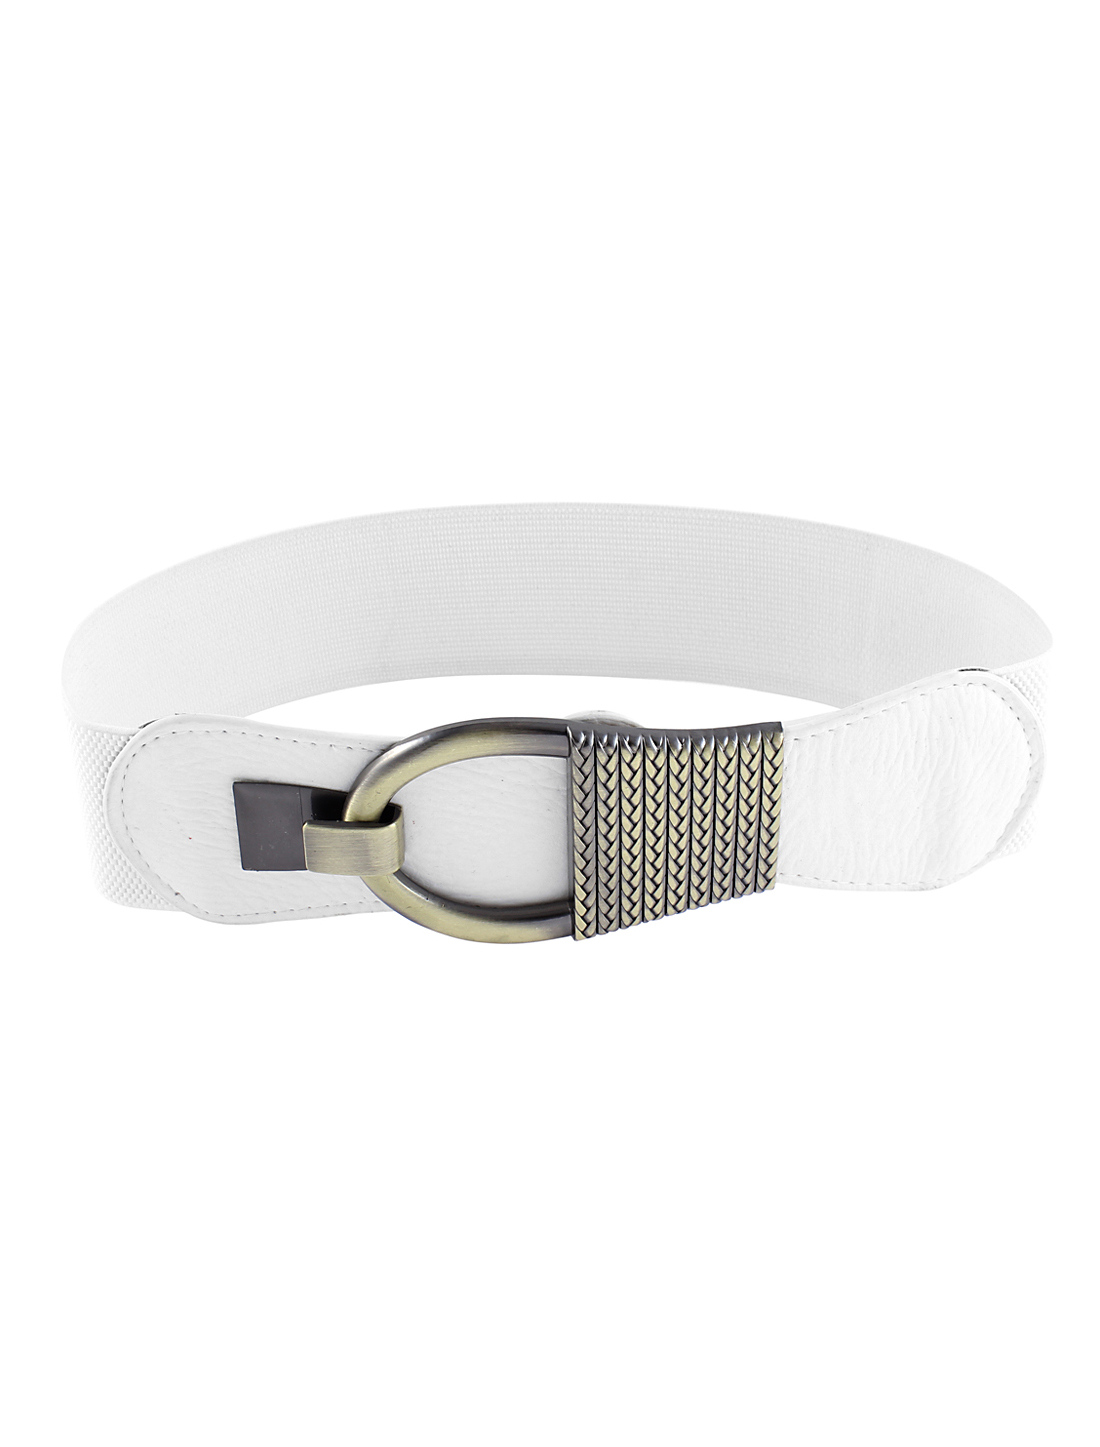 Metal Buckle WhiteTextured Stretch Cinch Belt for Lady